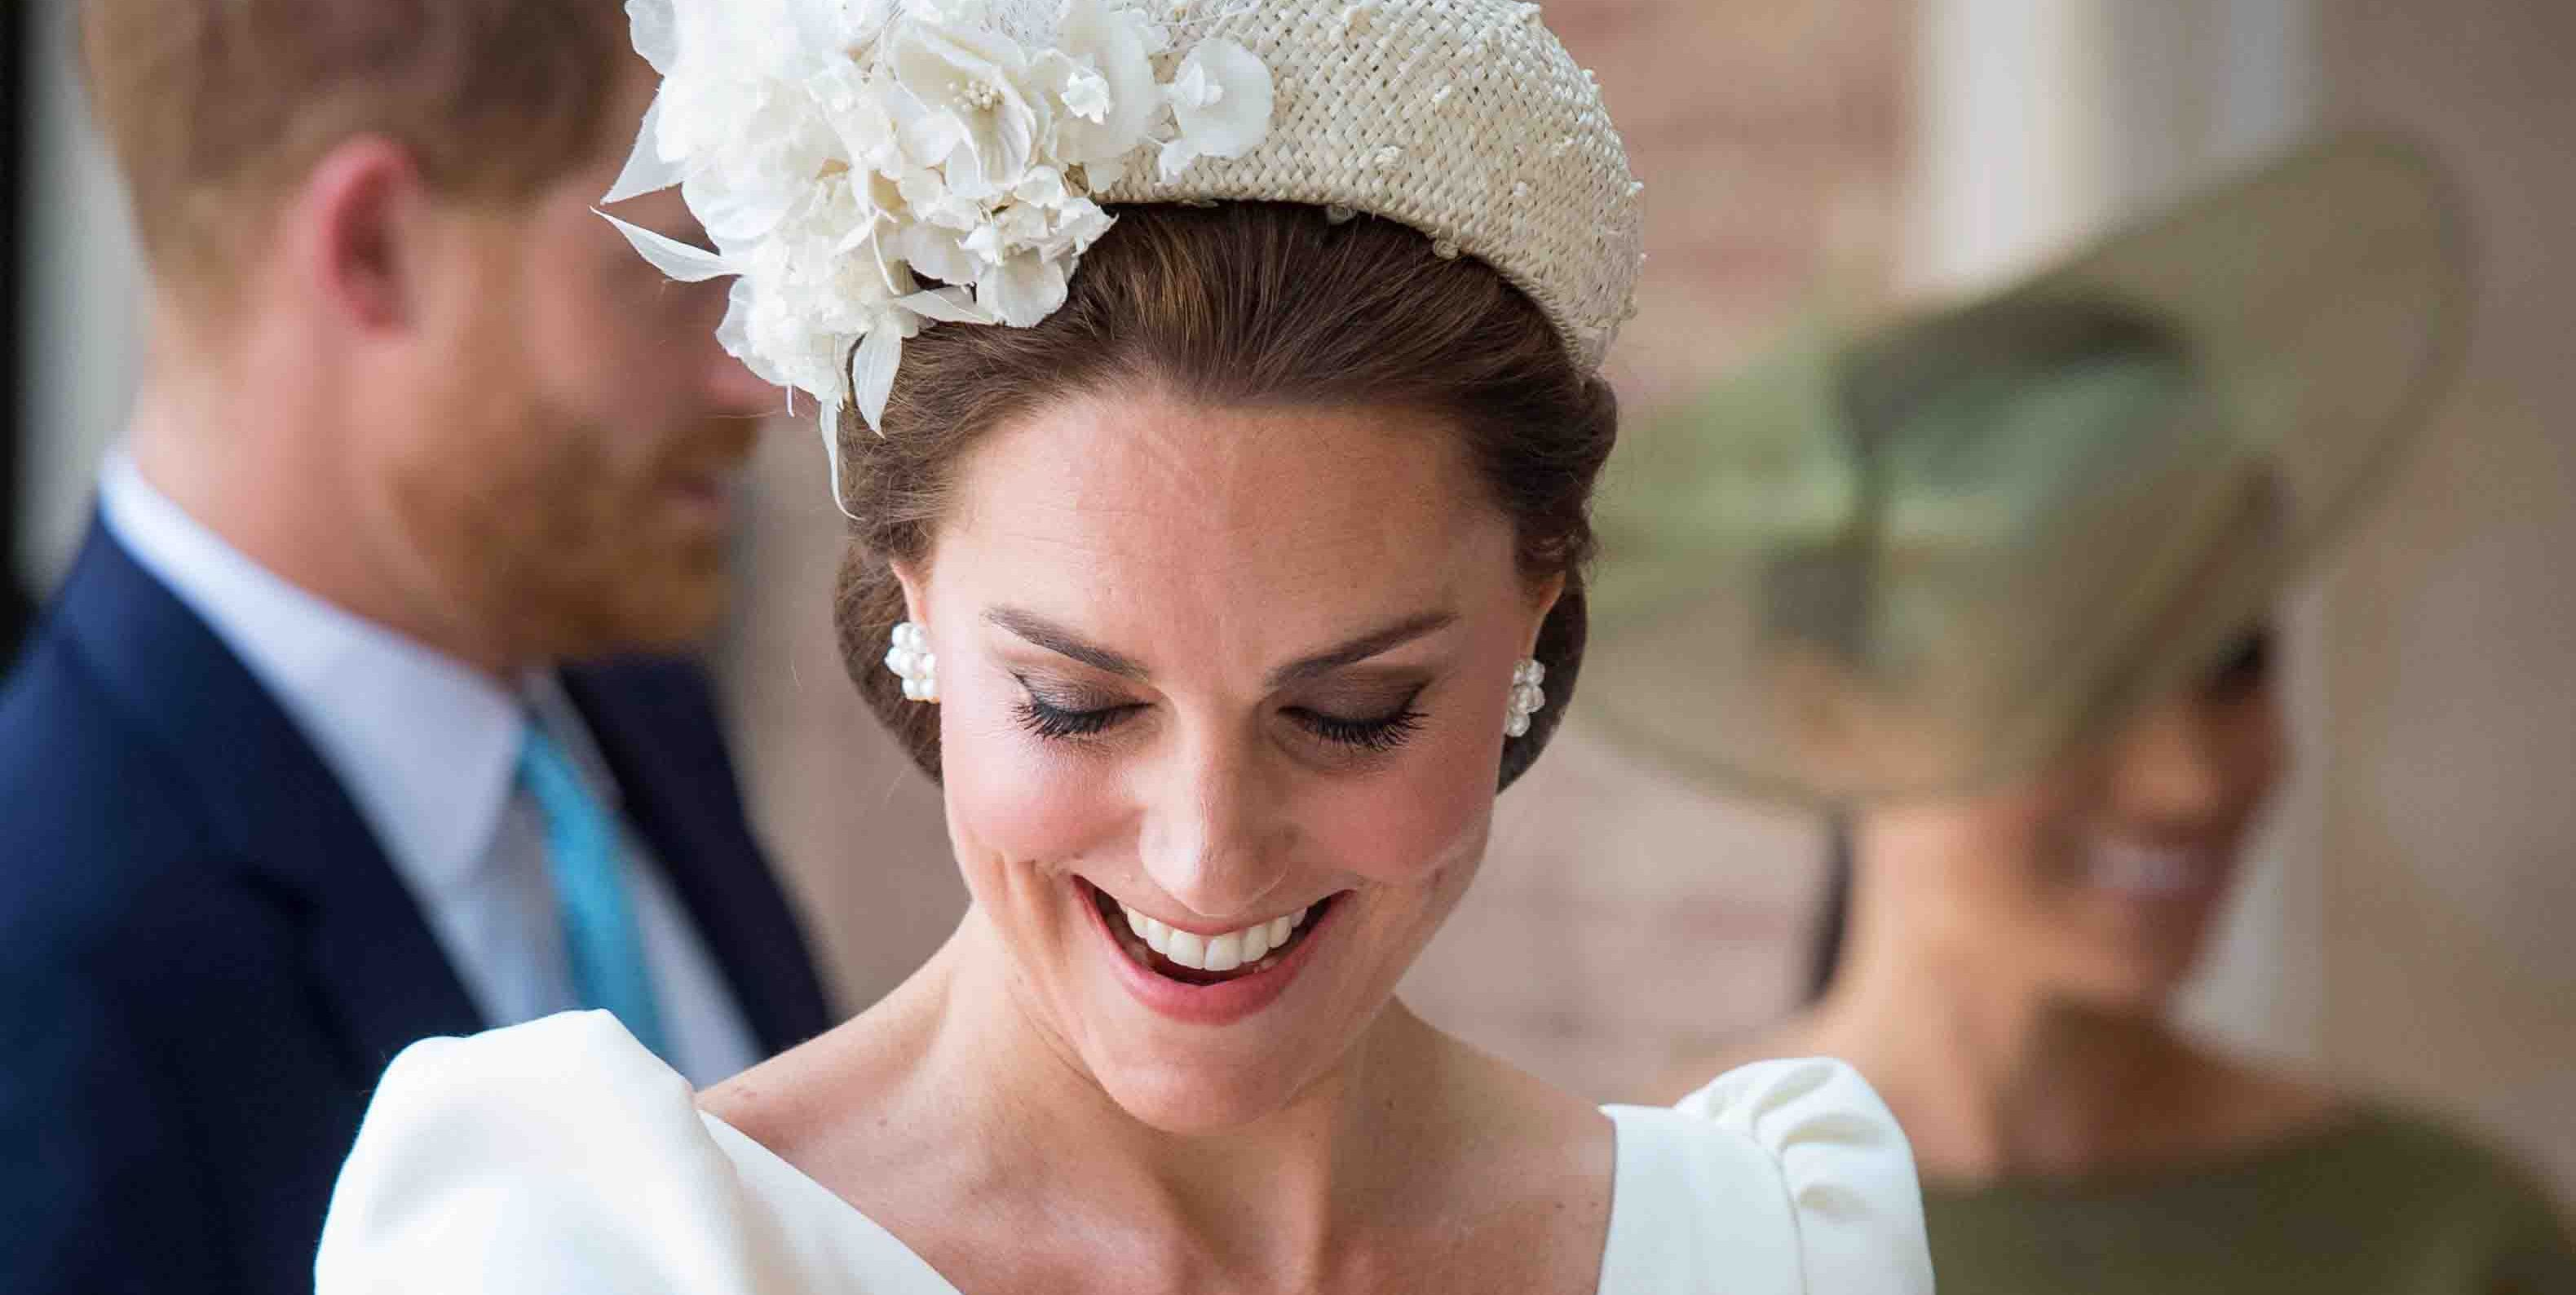 Prince Louis Is Awake and Grinning in Extra, Super Candid Christening Photo